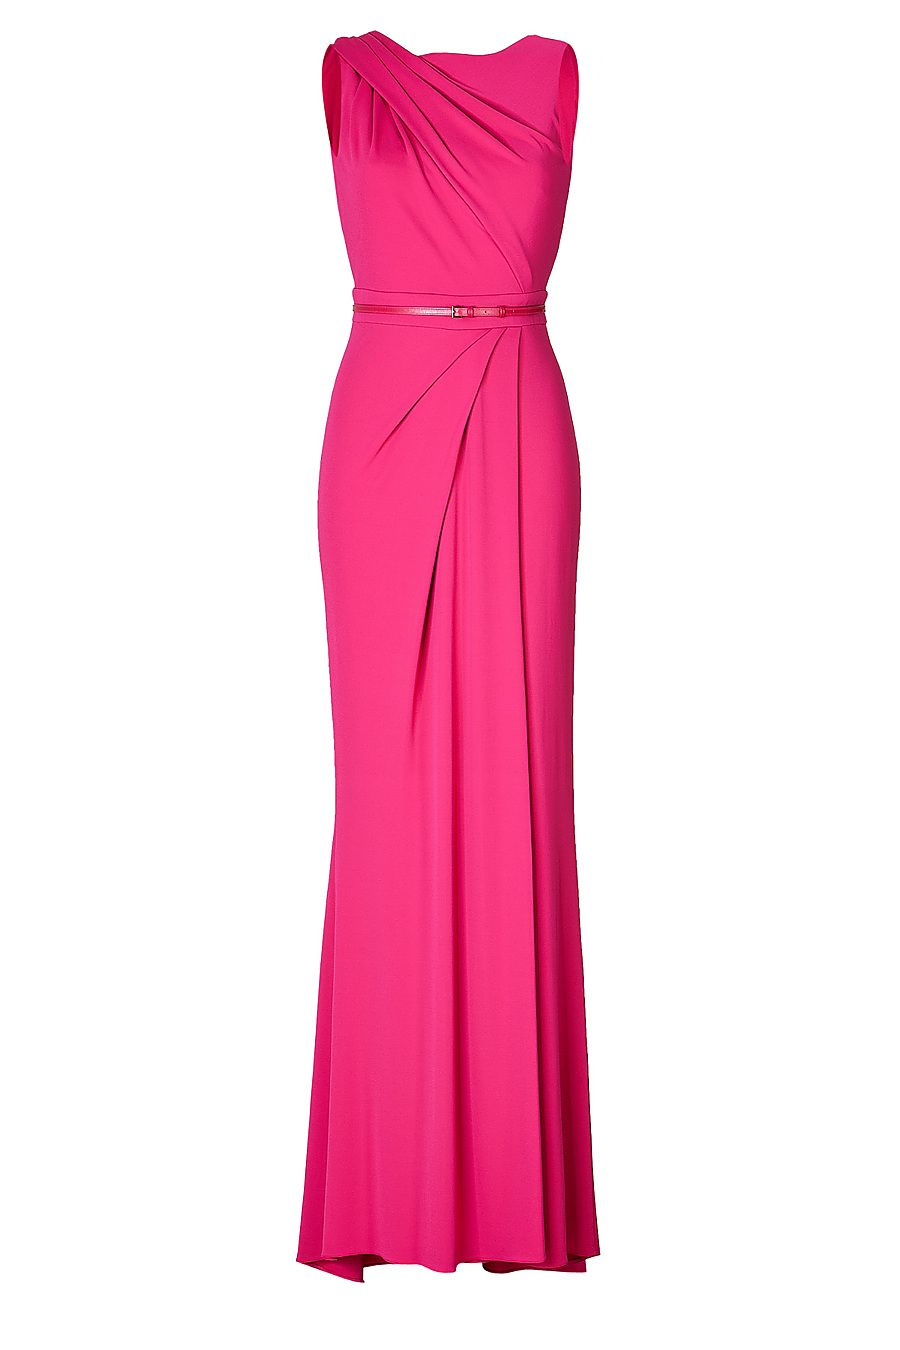 Boutique Pink Lace Open Back Maxi Dress Small NWT | Pinterest